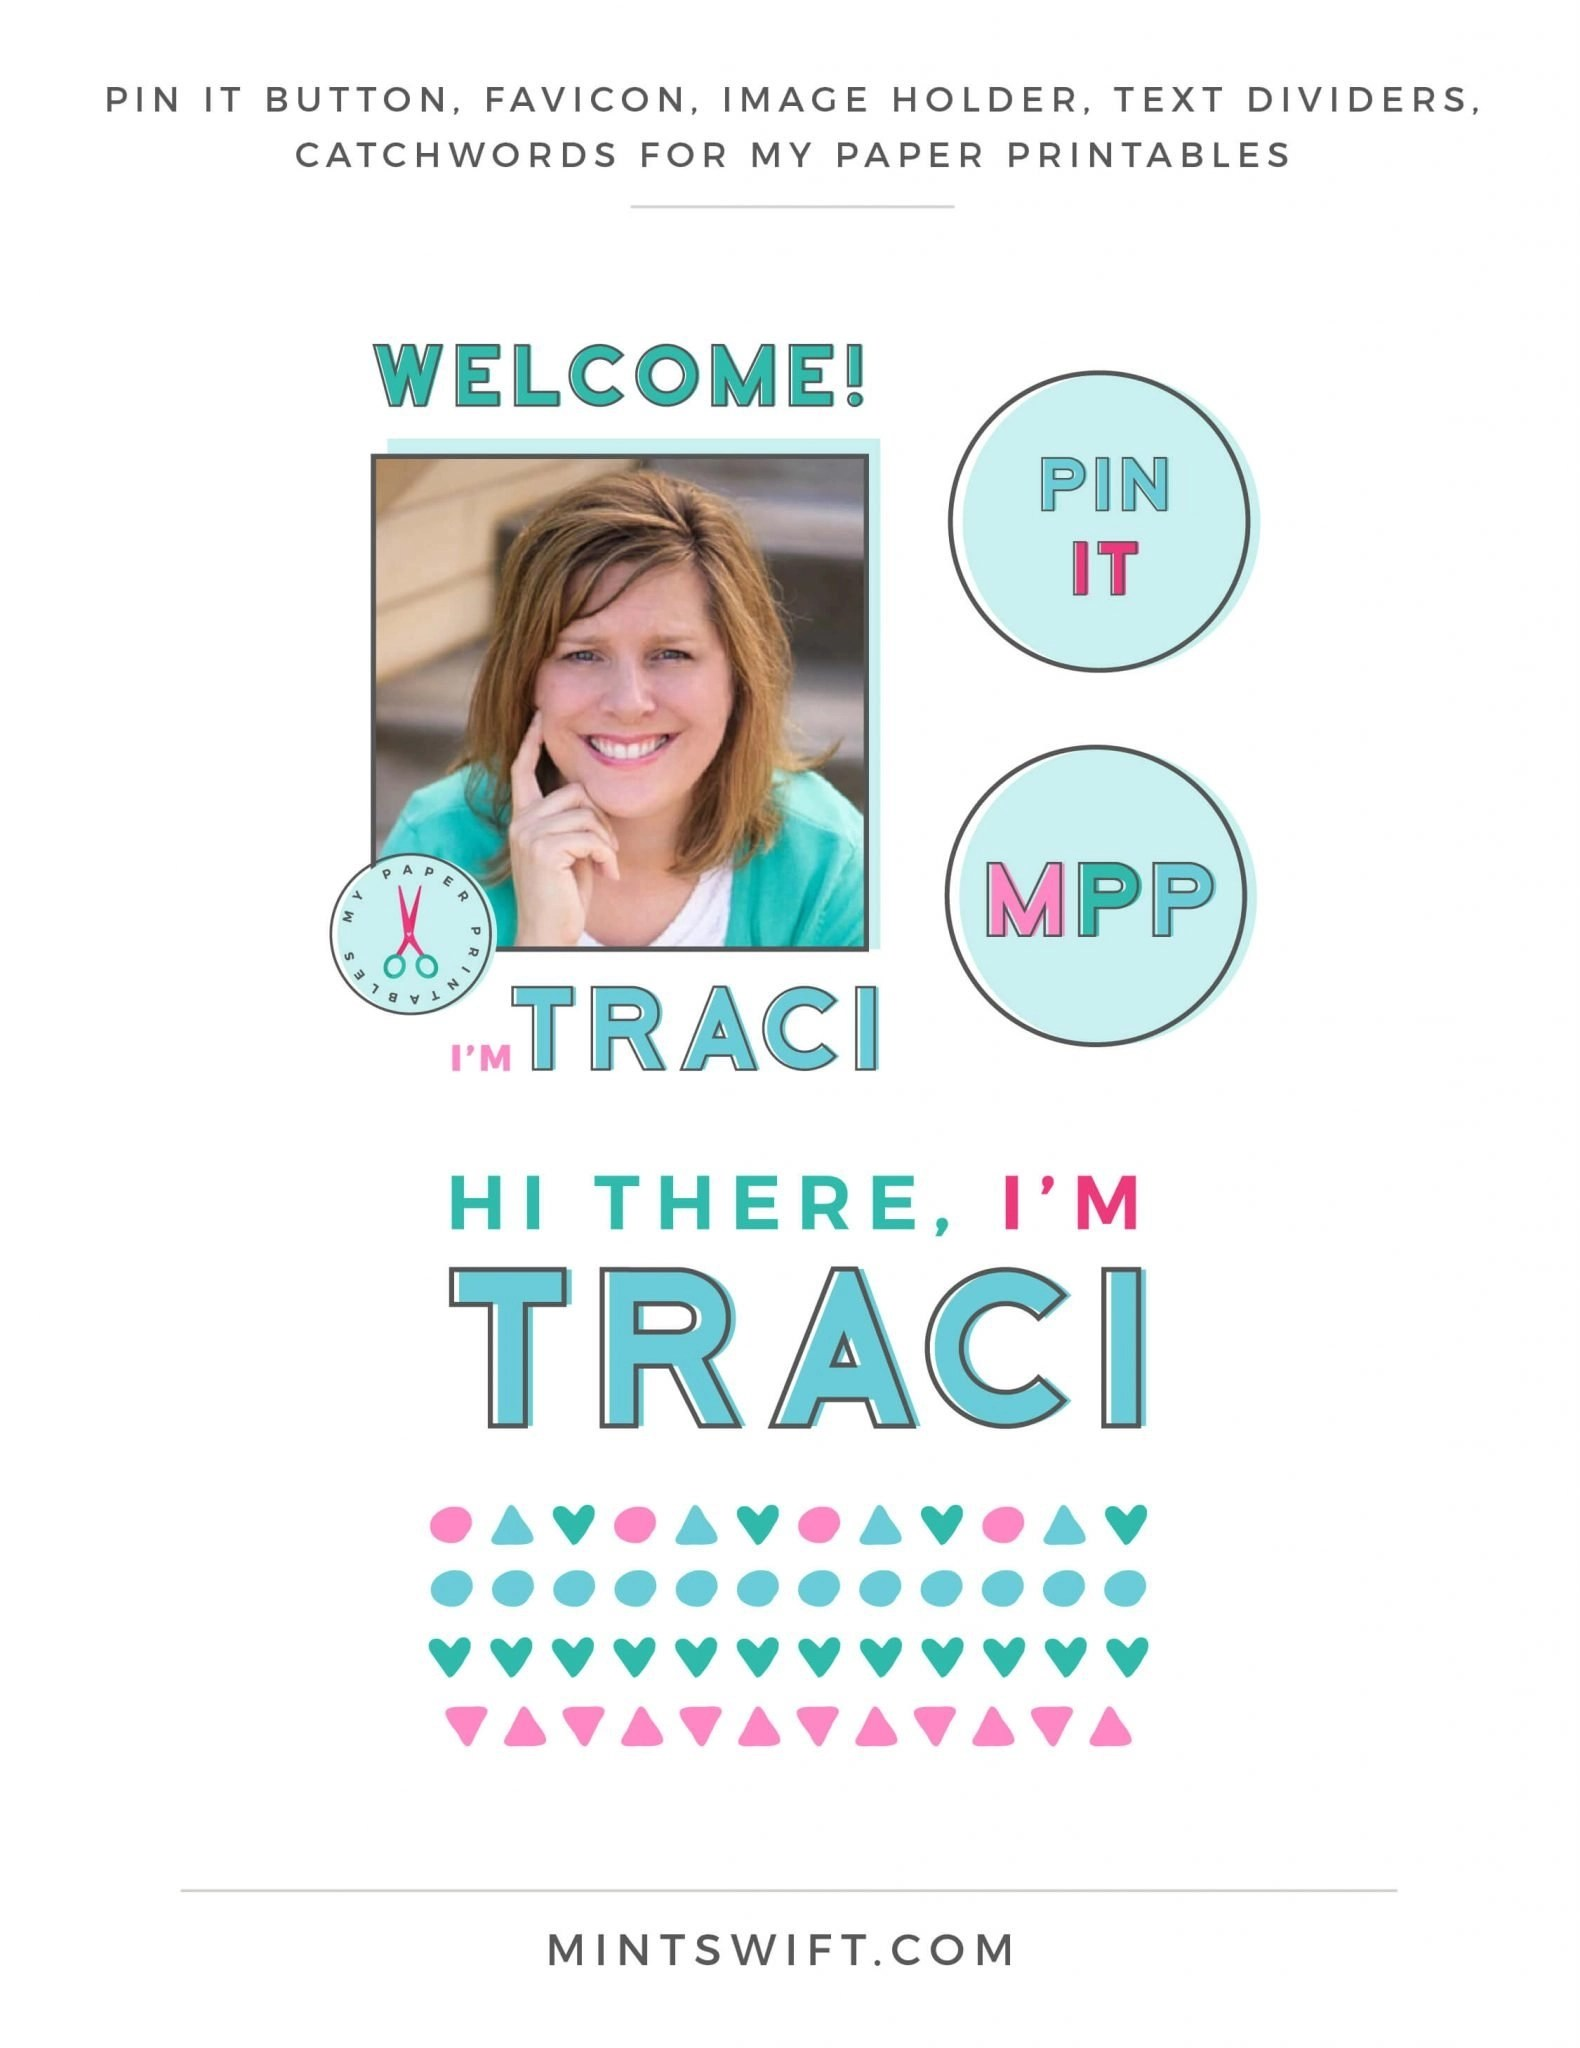 My Paper Printables - Pin it button, Favicon, Image Holder, Text dividers, Catchwords - Brand Design - MintSwift